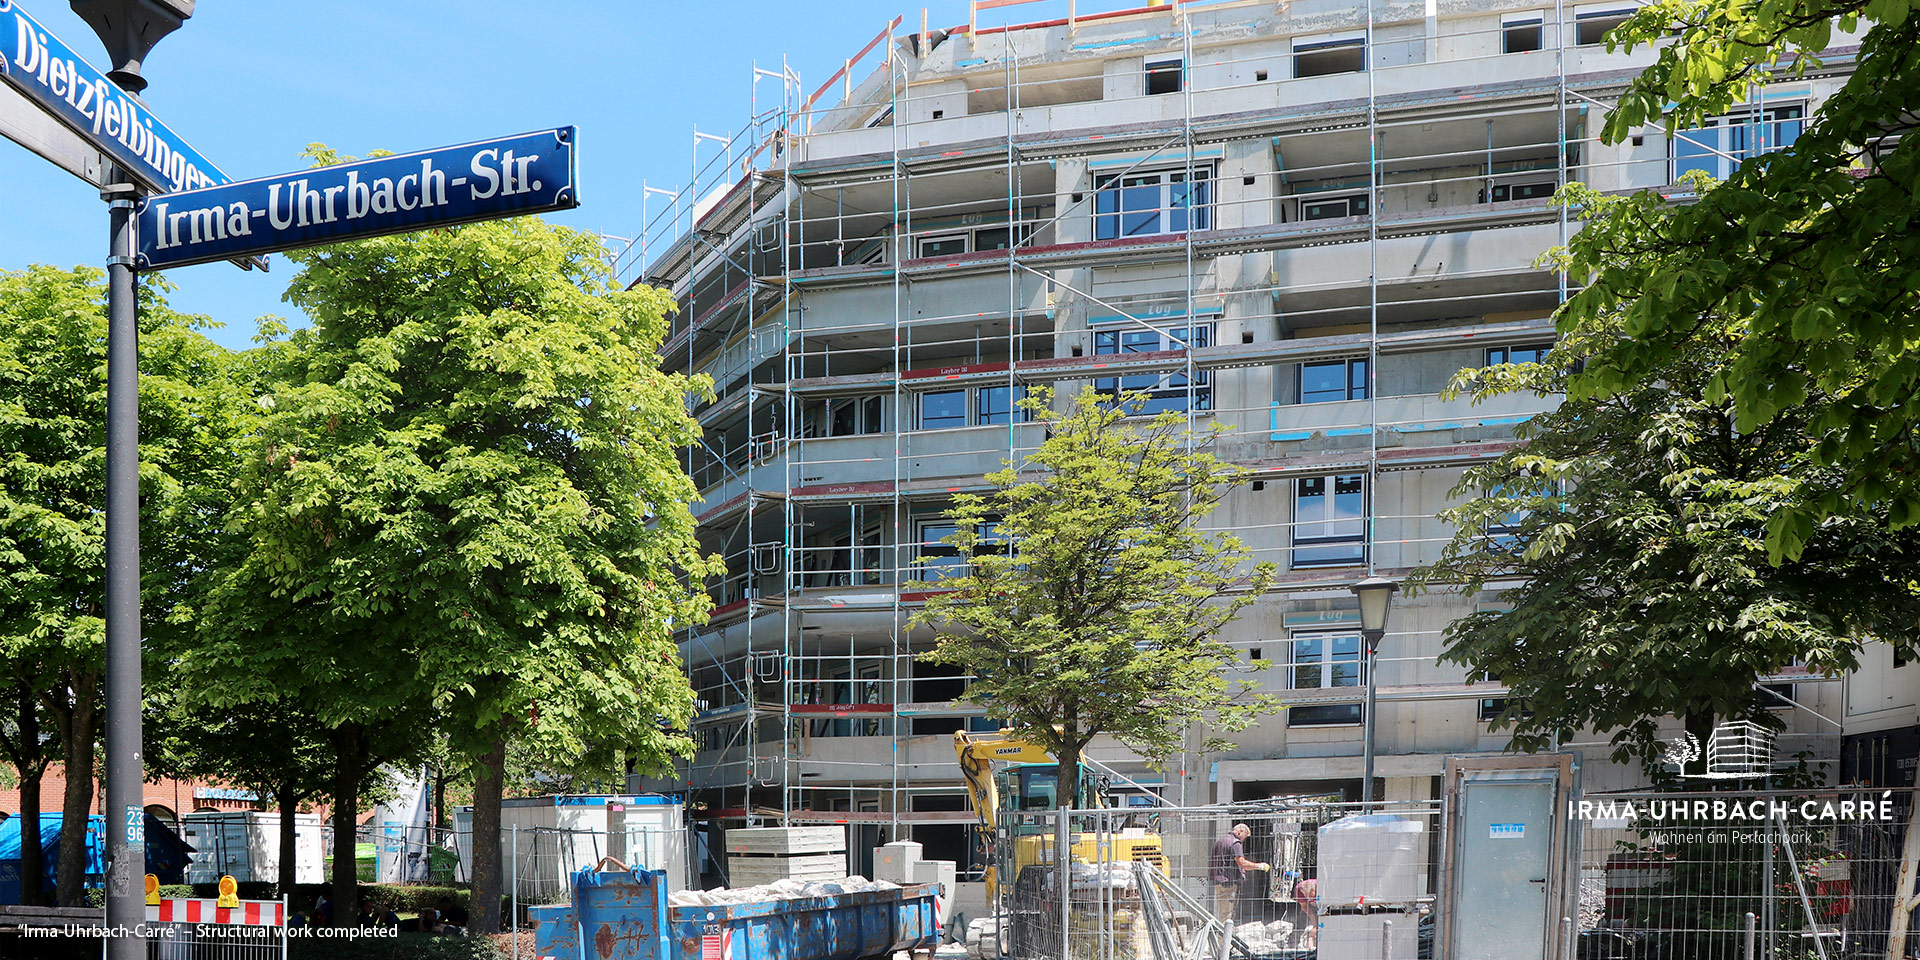 """""""Irma-Uhrbach-Carré"""" in Munich's Perlach Süd district: Structural work completed"""